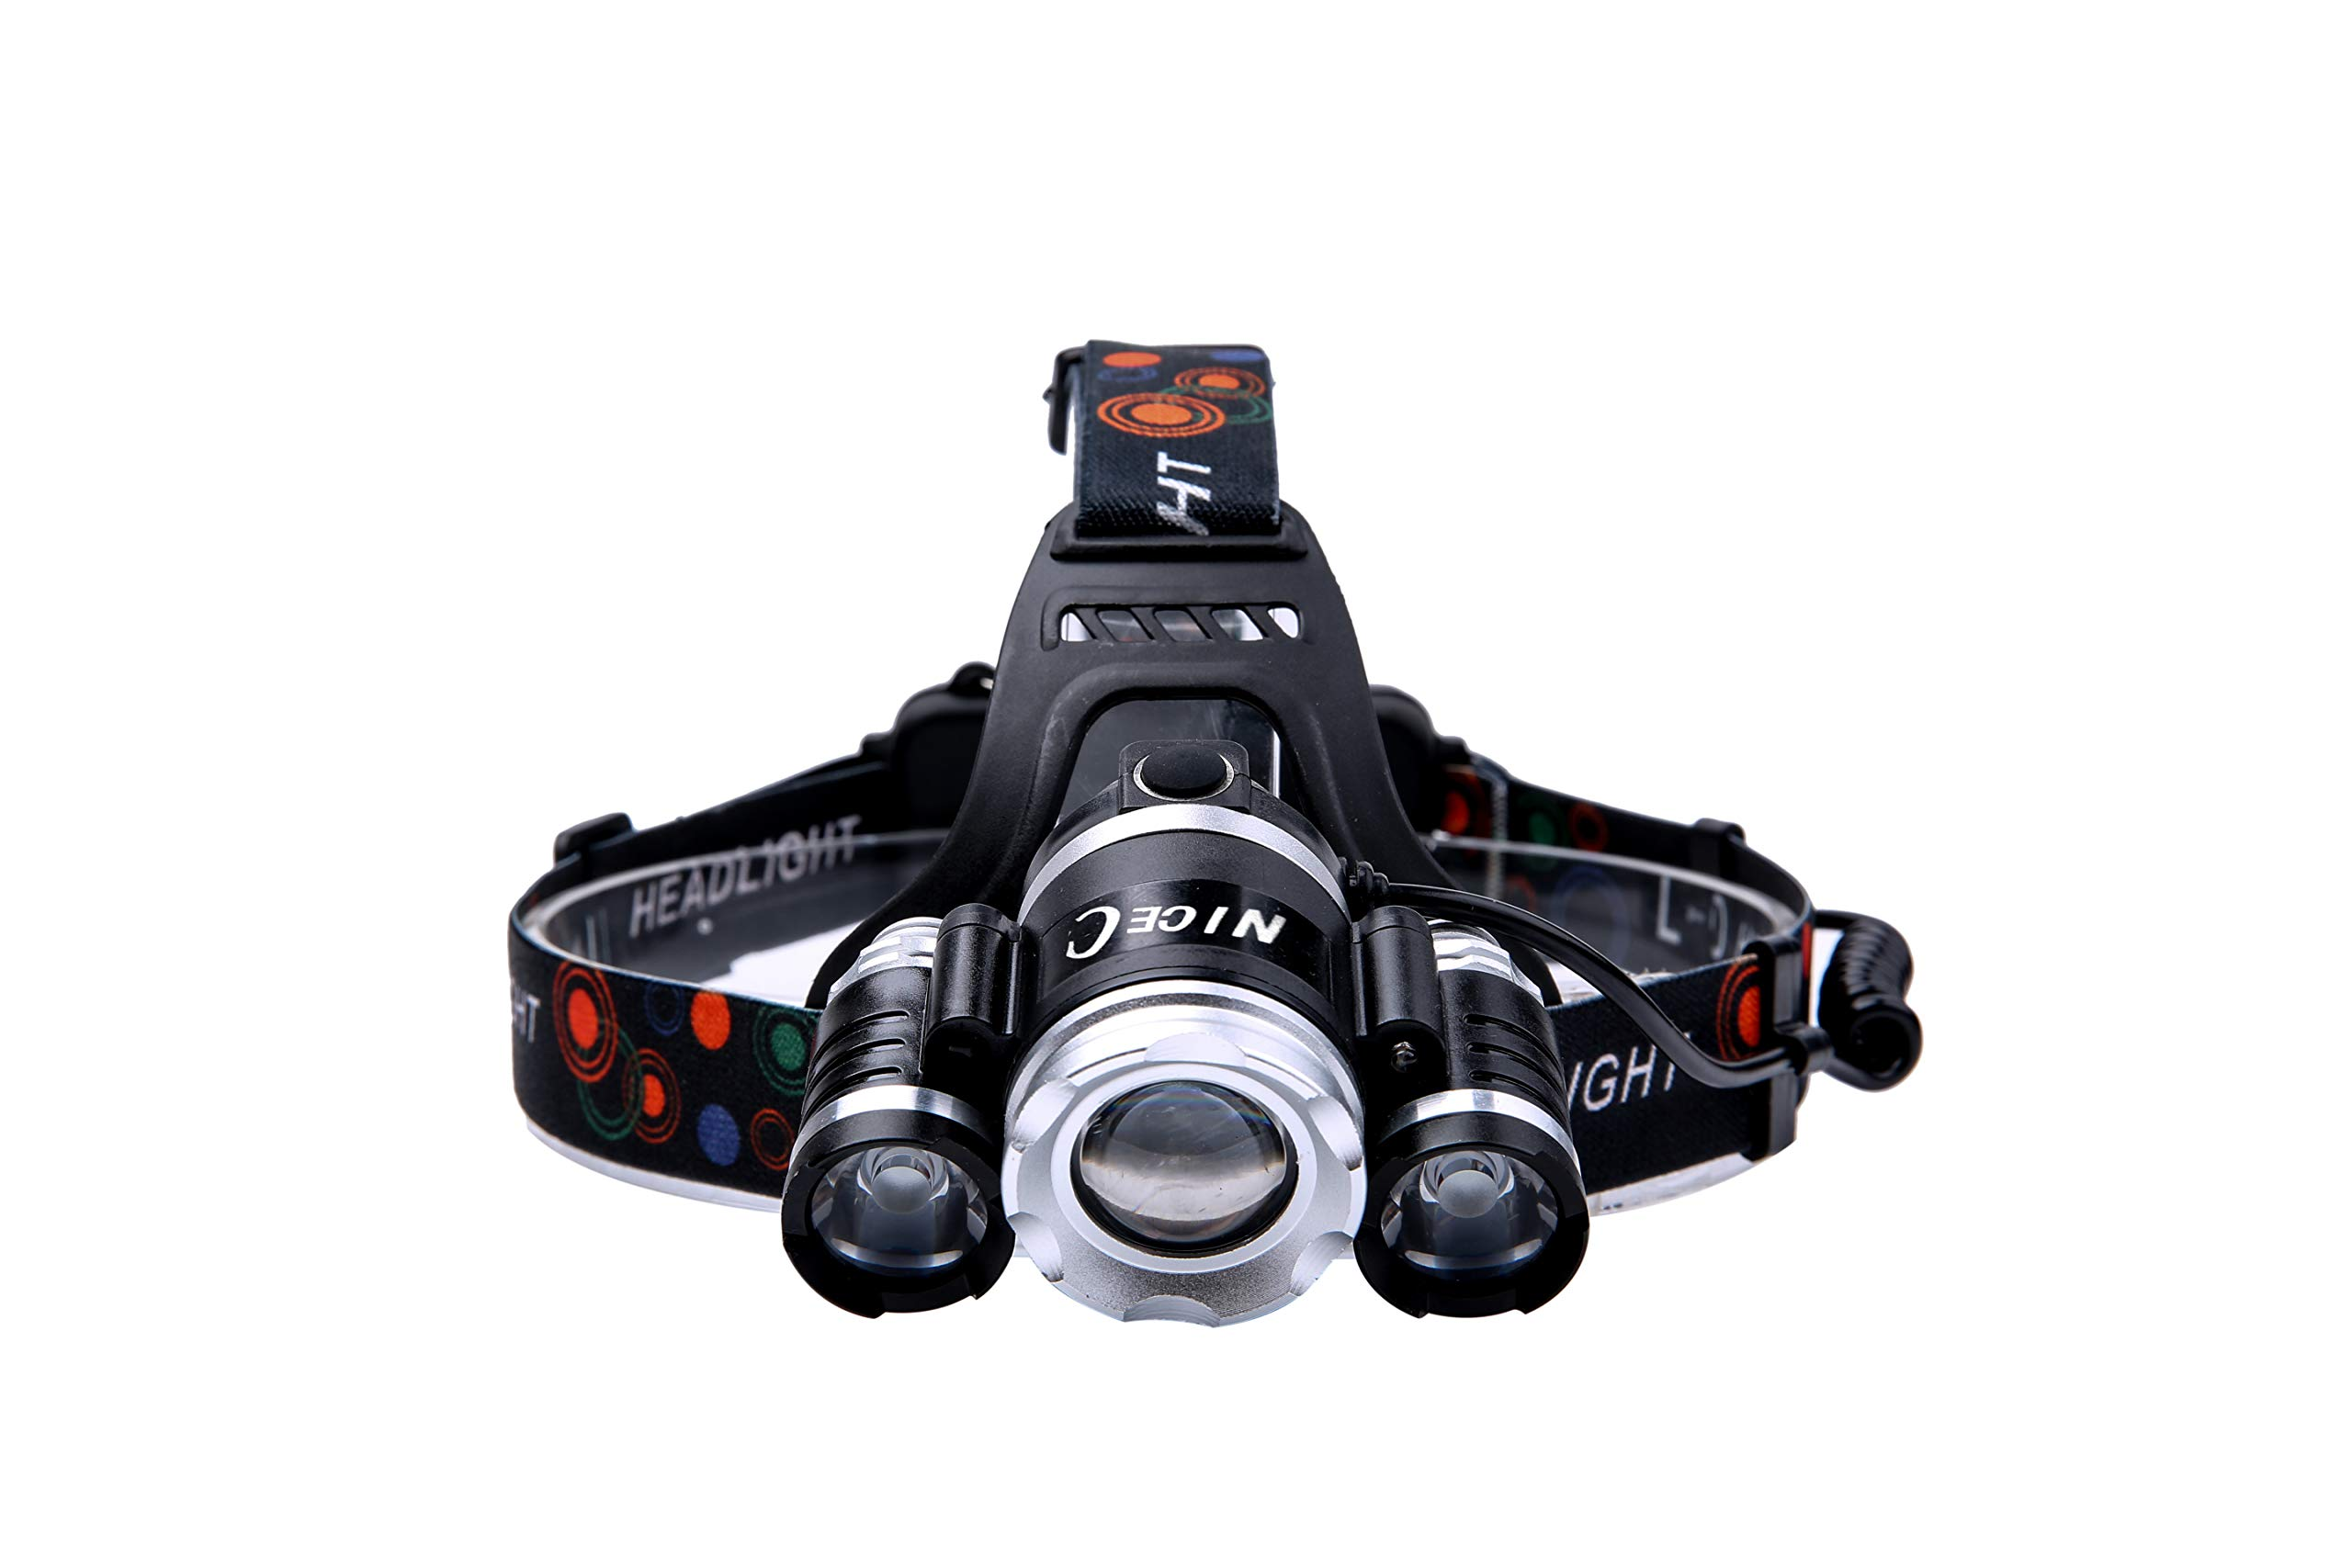 NiceC Induction Rechargeable Headlamp Waterproof LED 6000 Lumen flashlight headlight for camping, work, night riding, running, hiking by NiceC (Image #8)